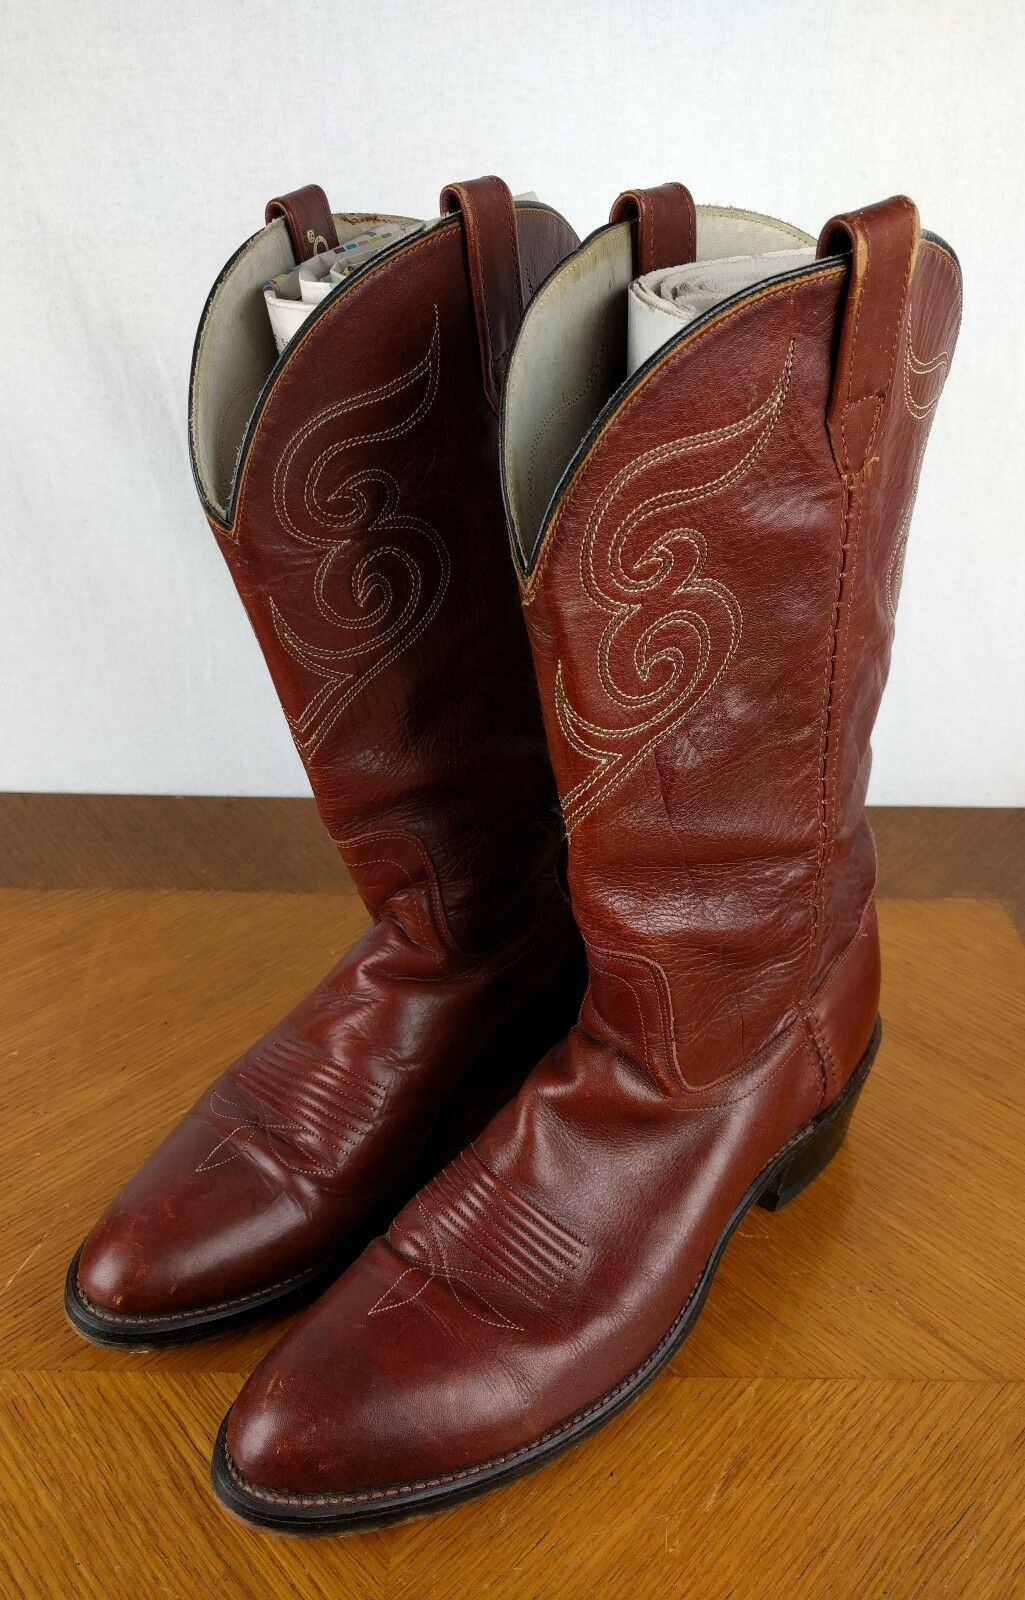 VTG Brown Dingo Cowboy Stivali Shoes Uomo Size 10.5 B Bull Riding Pelle Western